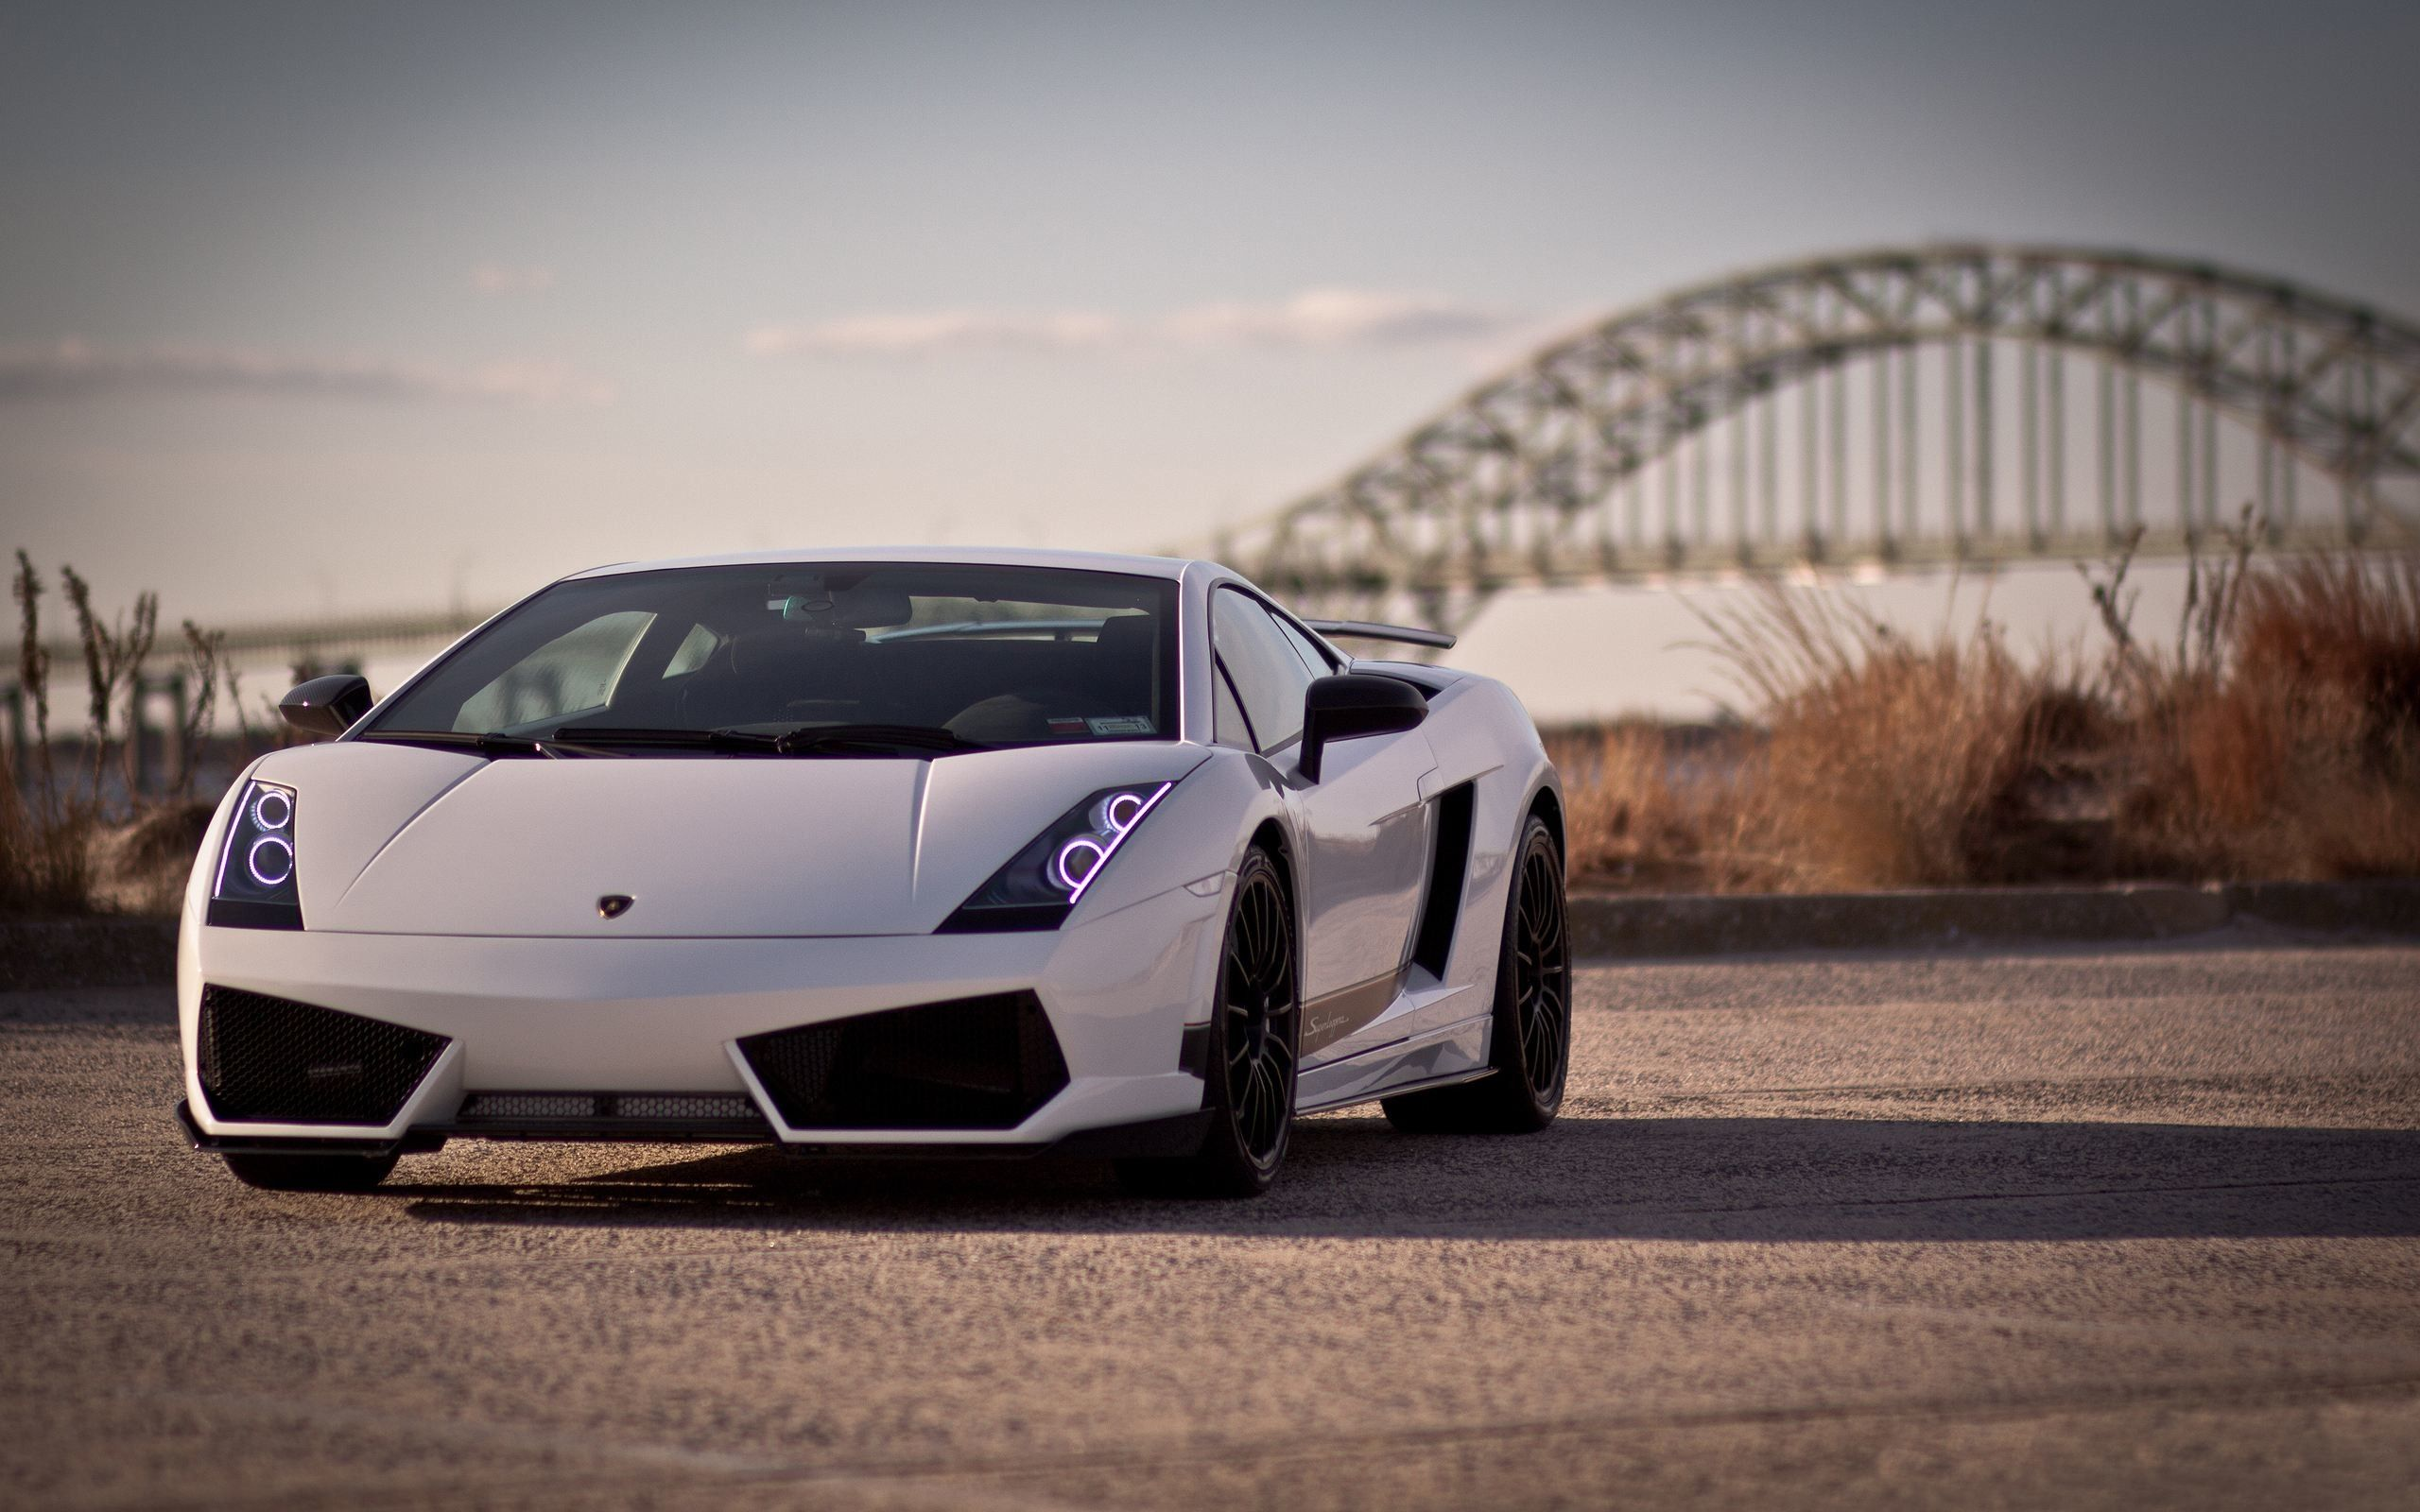 High Resolution Desktop Wallpaper 2560x1600 64 Images Lamborghini Gallardo Car Wallpapers Sports Cars Luxury